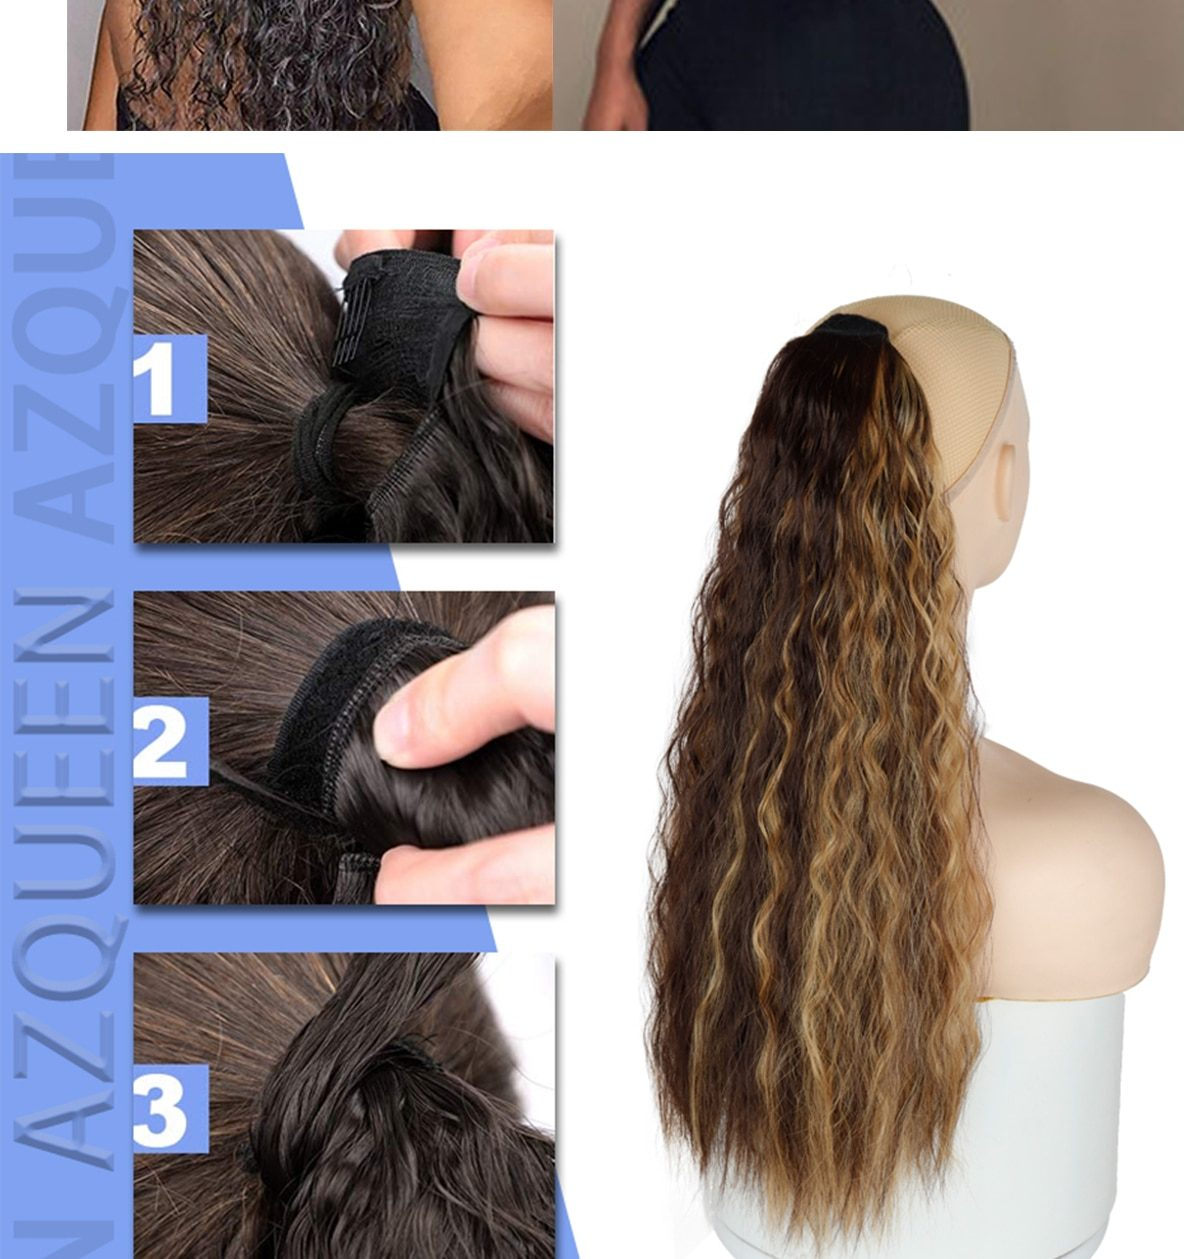 AZQUEEN Synthetic Corn Wavy Long Ponytail  Hairpiece Wrap on Clip Hair Extensions Ombre Brown Pony Tail Blonde Fack Hair